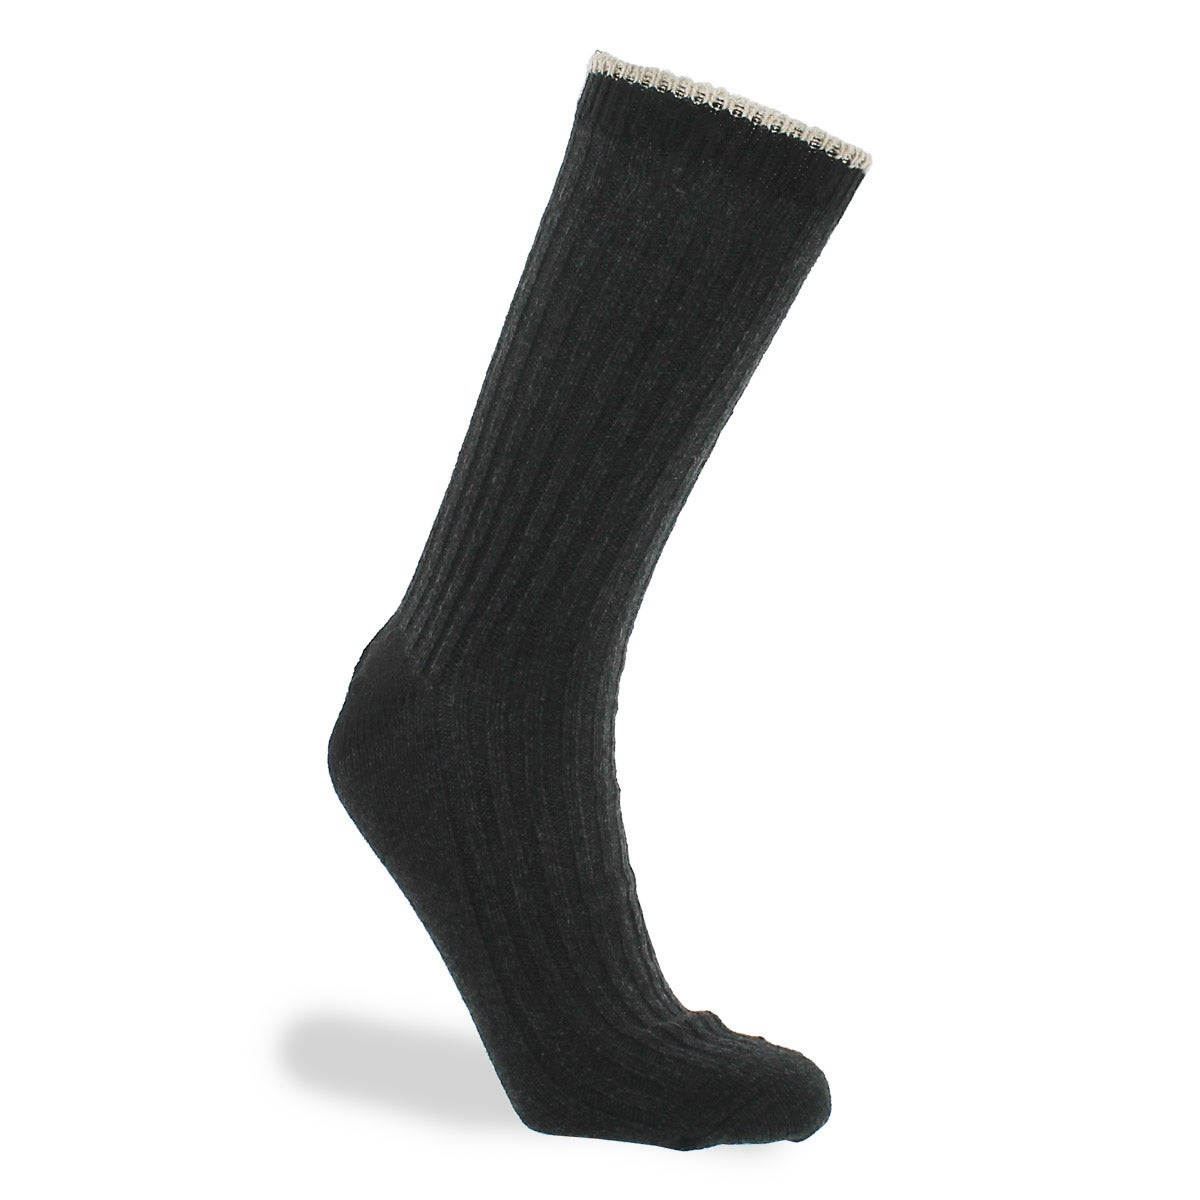 Mns 84N Basic Rib Crew black sock